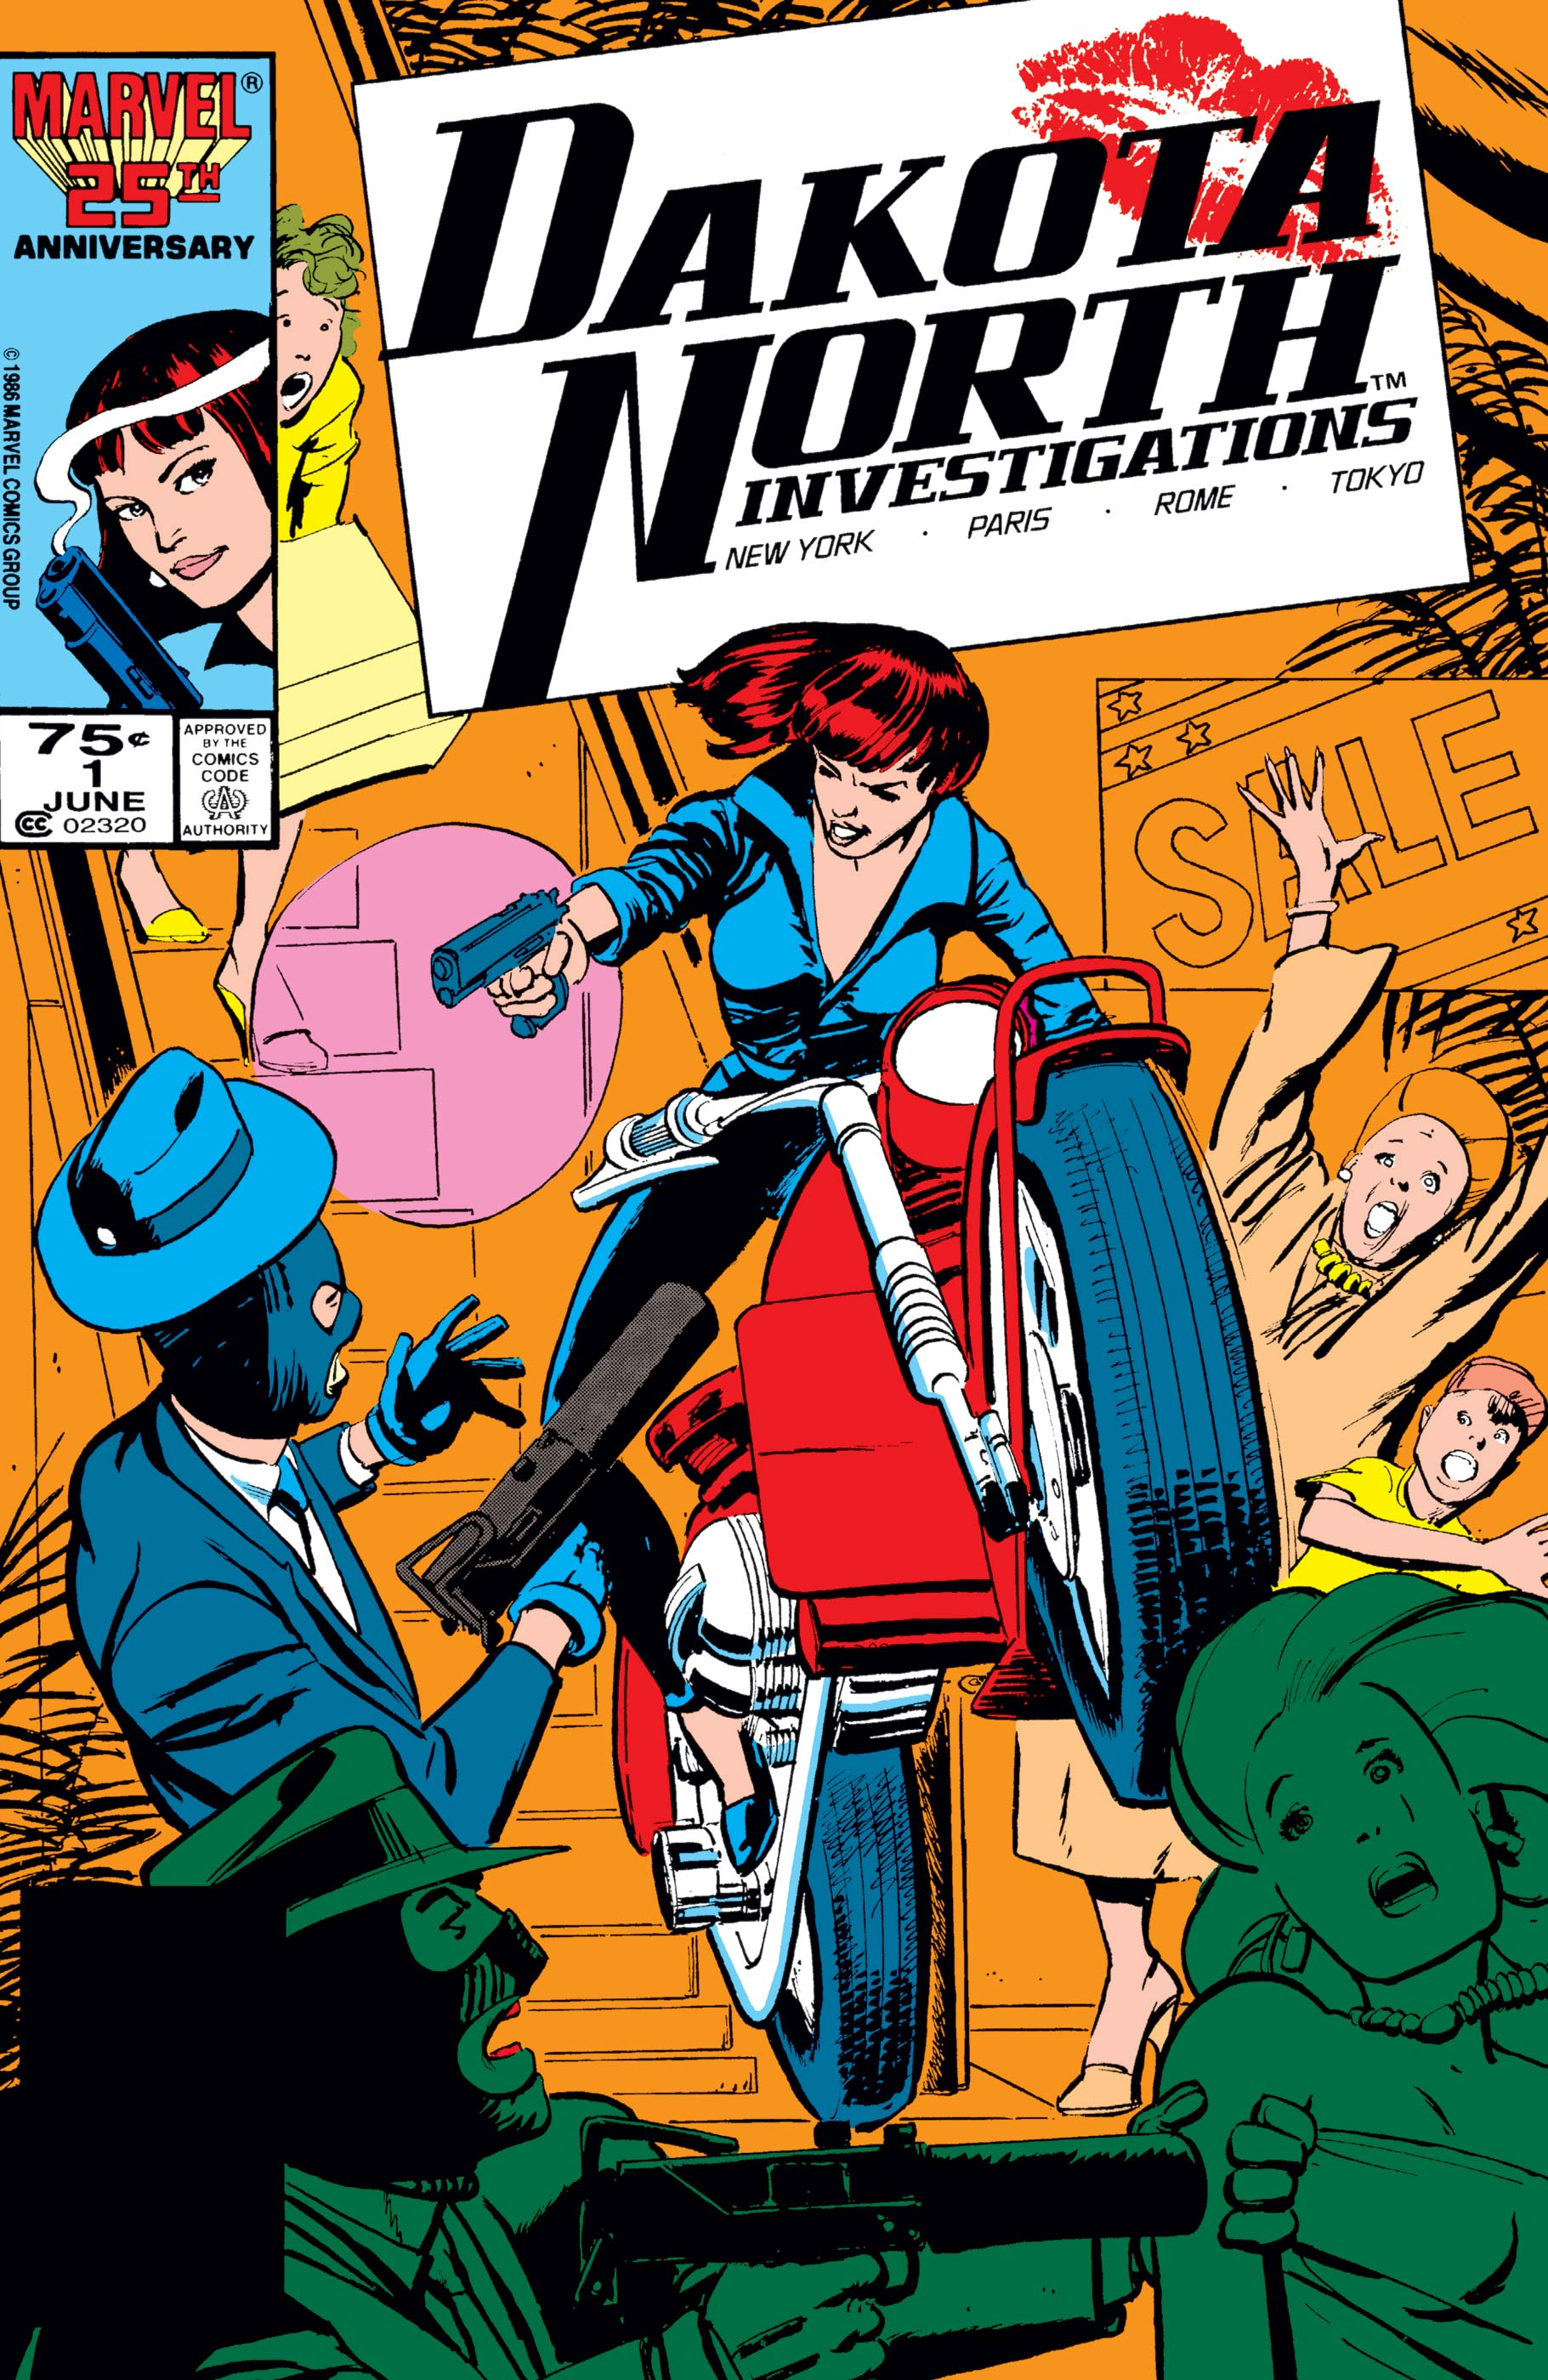 Here's hoping  Marvel Comics  has some new Dakota North stories coming in 2019.